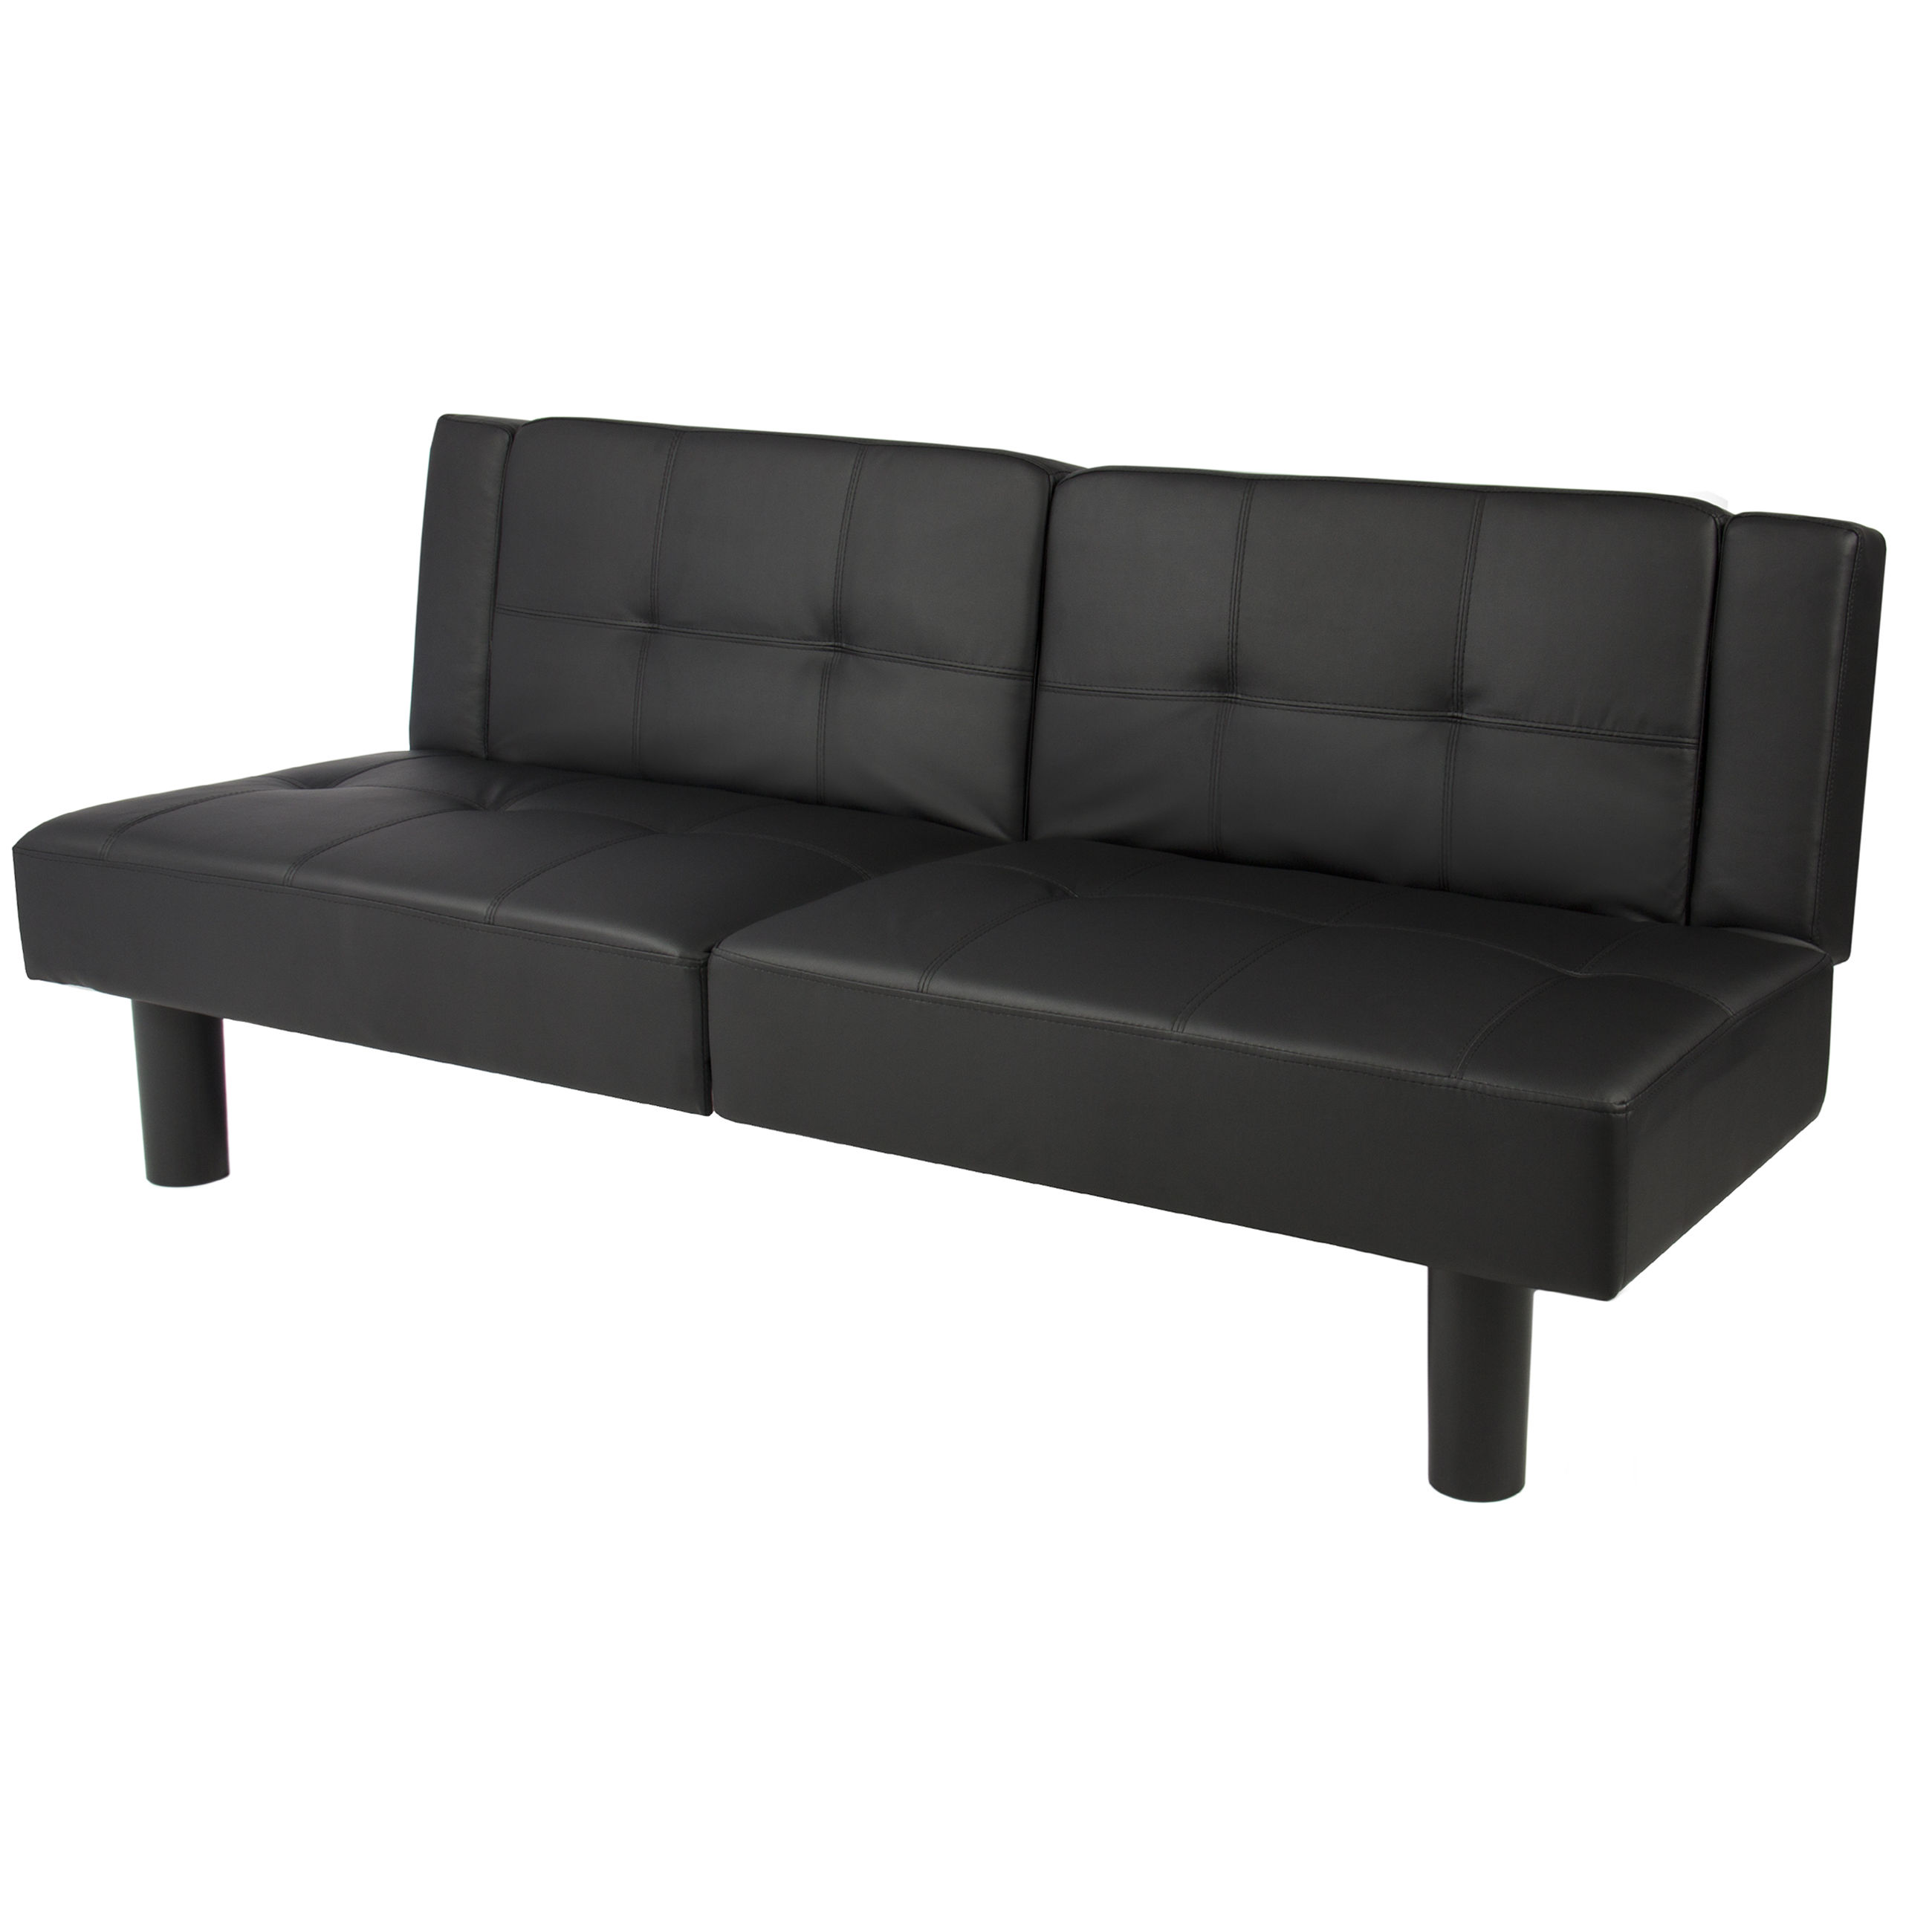 top lounge sofa bed inspiration-Beautiful Lounge sofa Bed Online